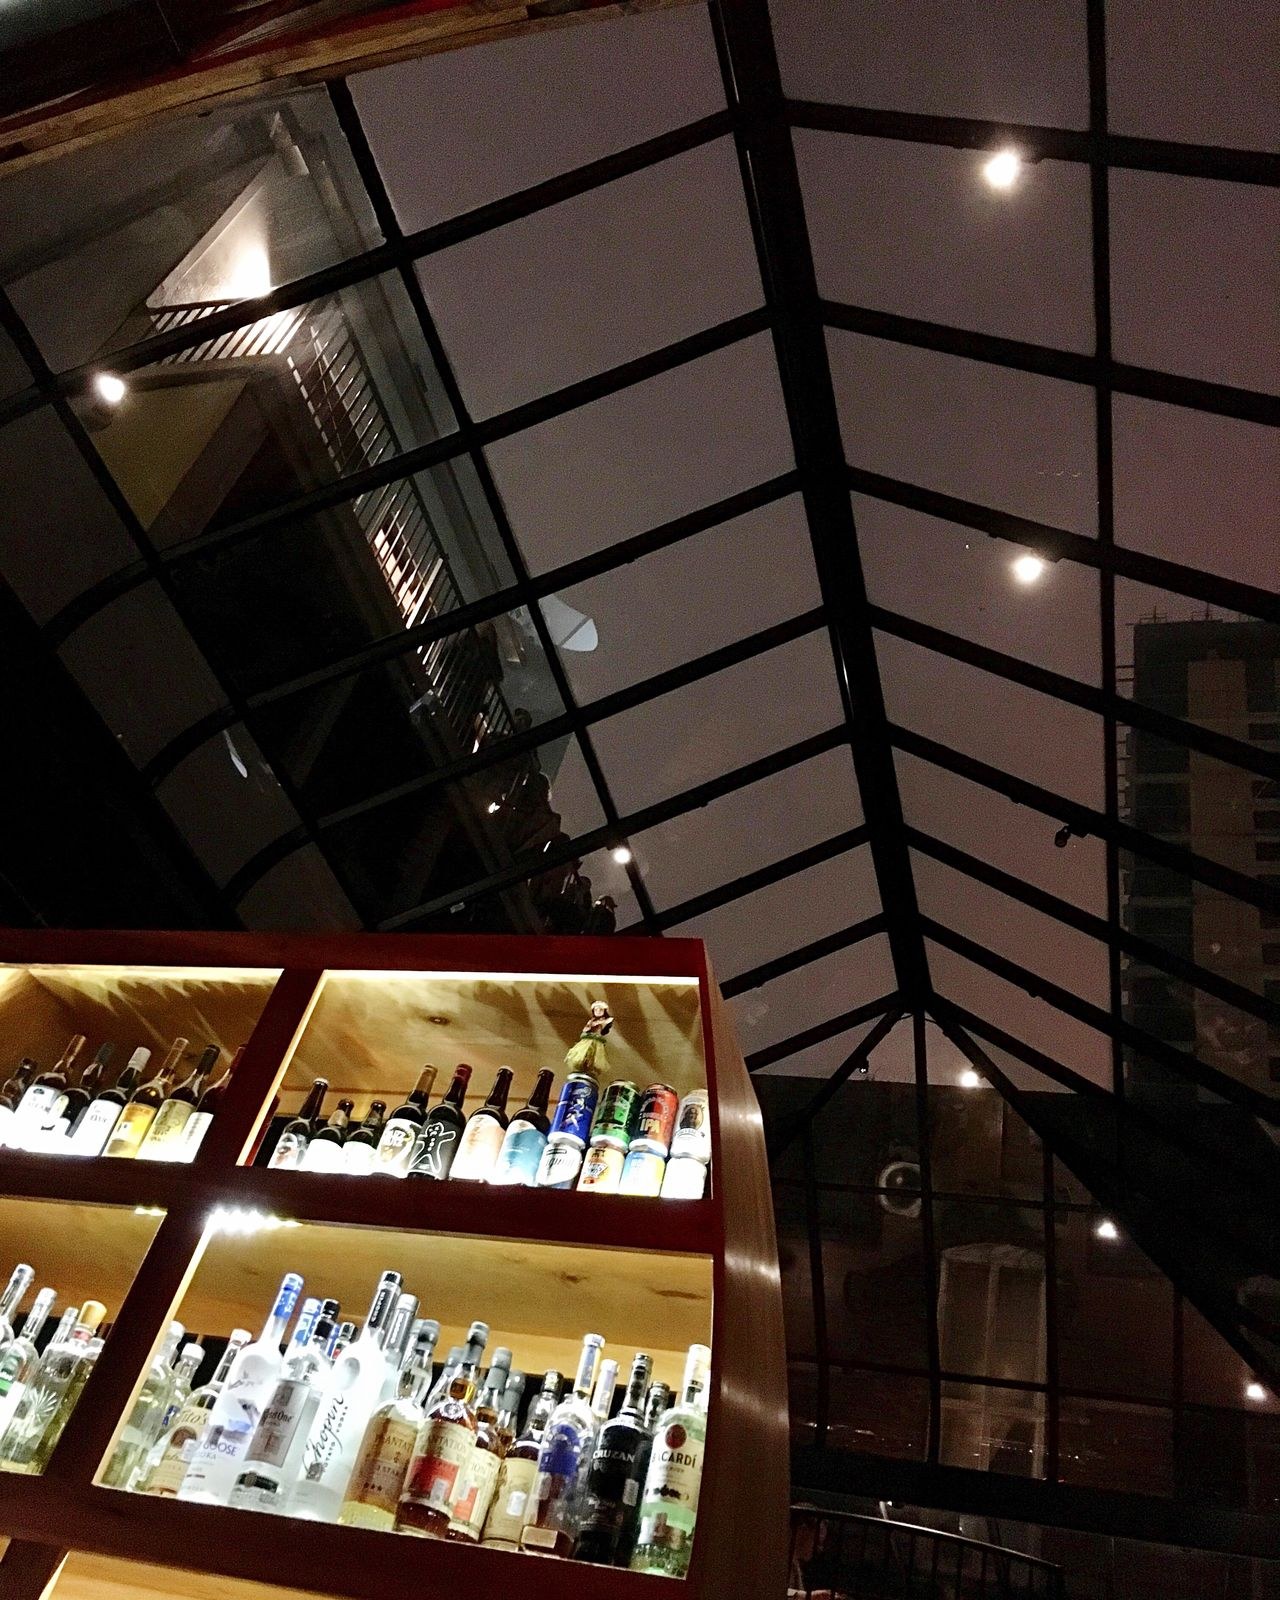 The City Light Indoors  No People Illuminated Architecture Day Bar Downtown Houston Low Angle View